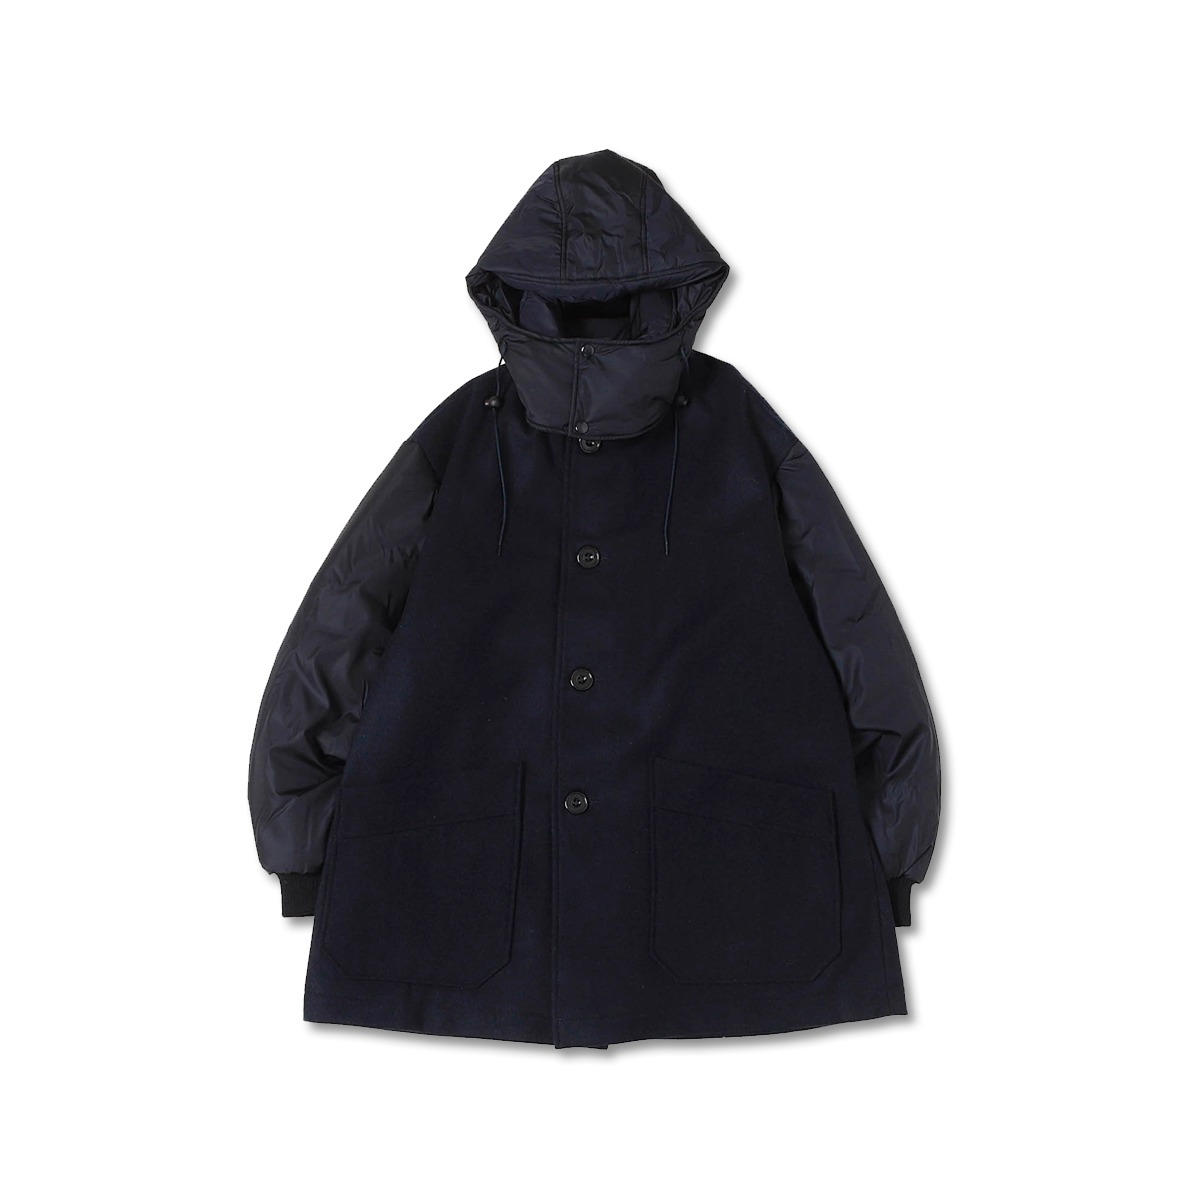 [ARPENTEUR] FUSION WOOL MELTON/NYLON LINED HOODED COAT 'NAVY'